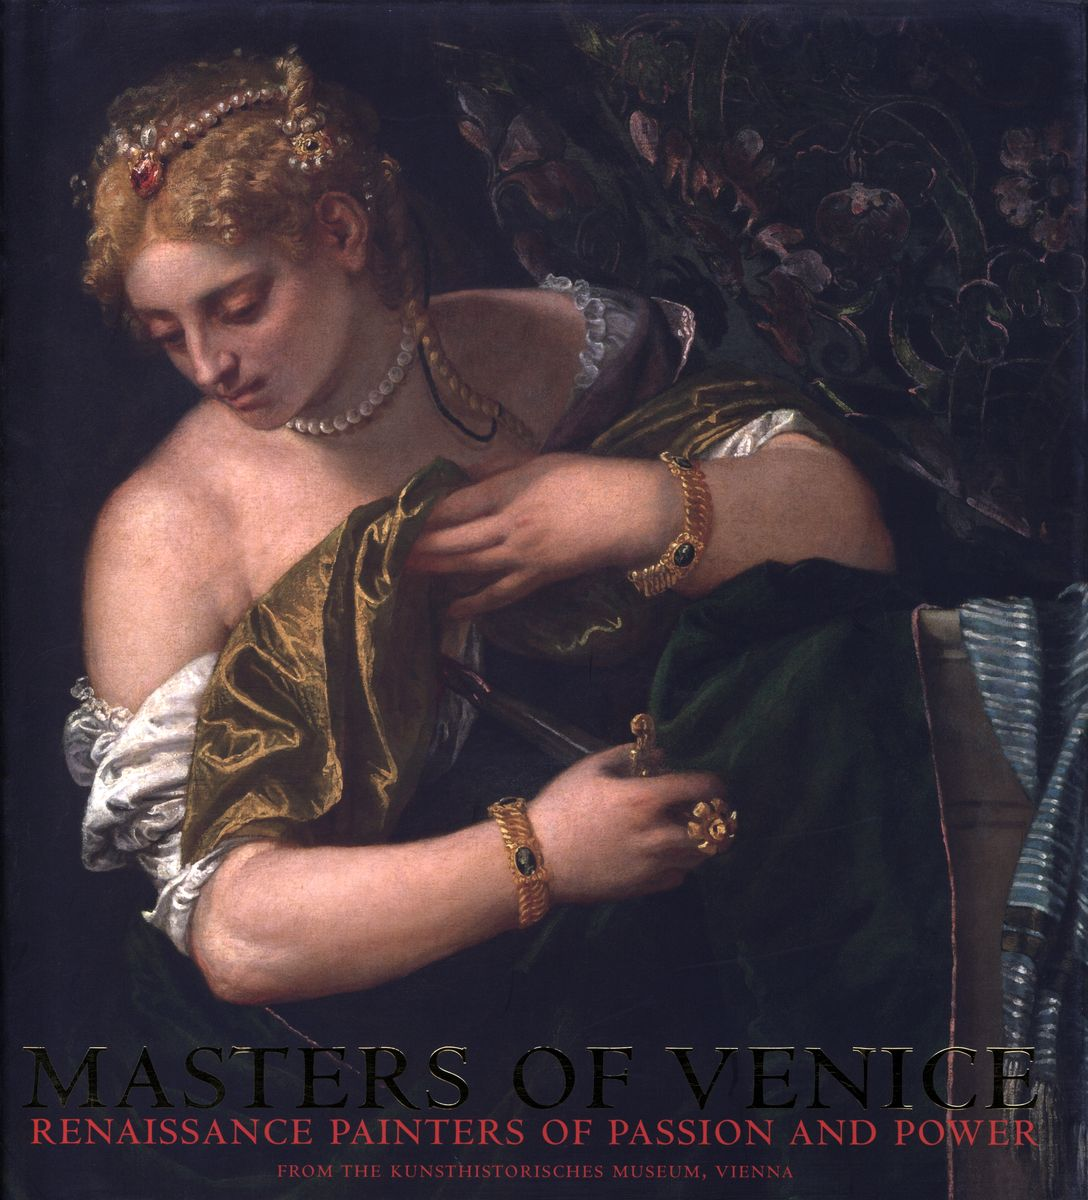 сер./Masters of Venice: Renaissance Painters of Passion and Power авт. по 500.00 руб от изд. Prestel